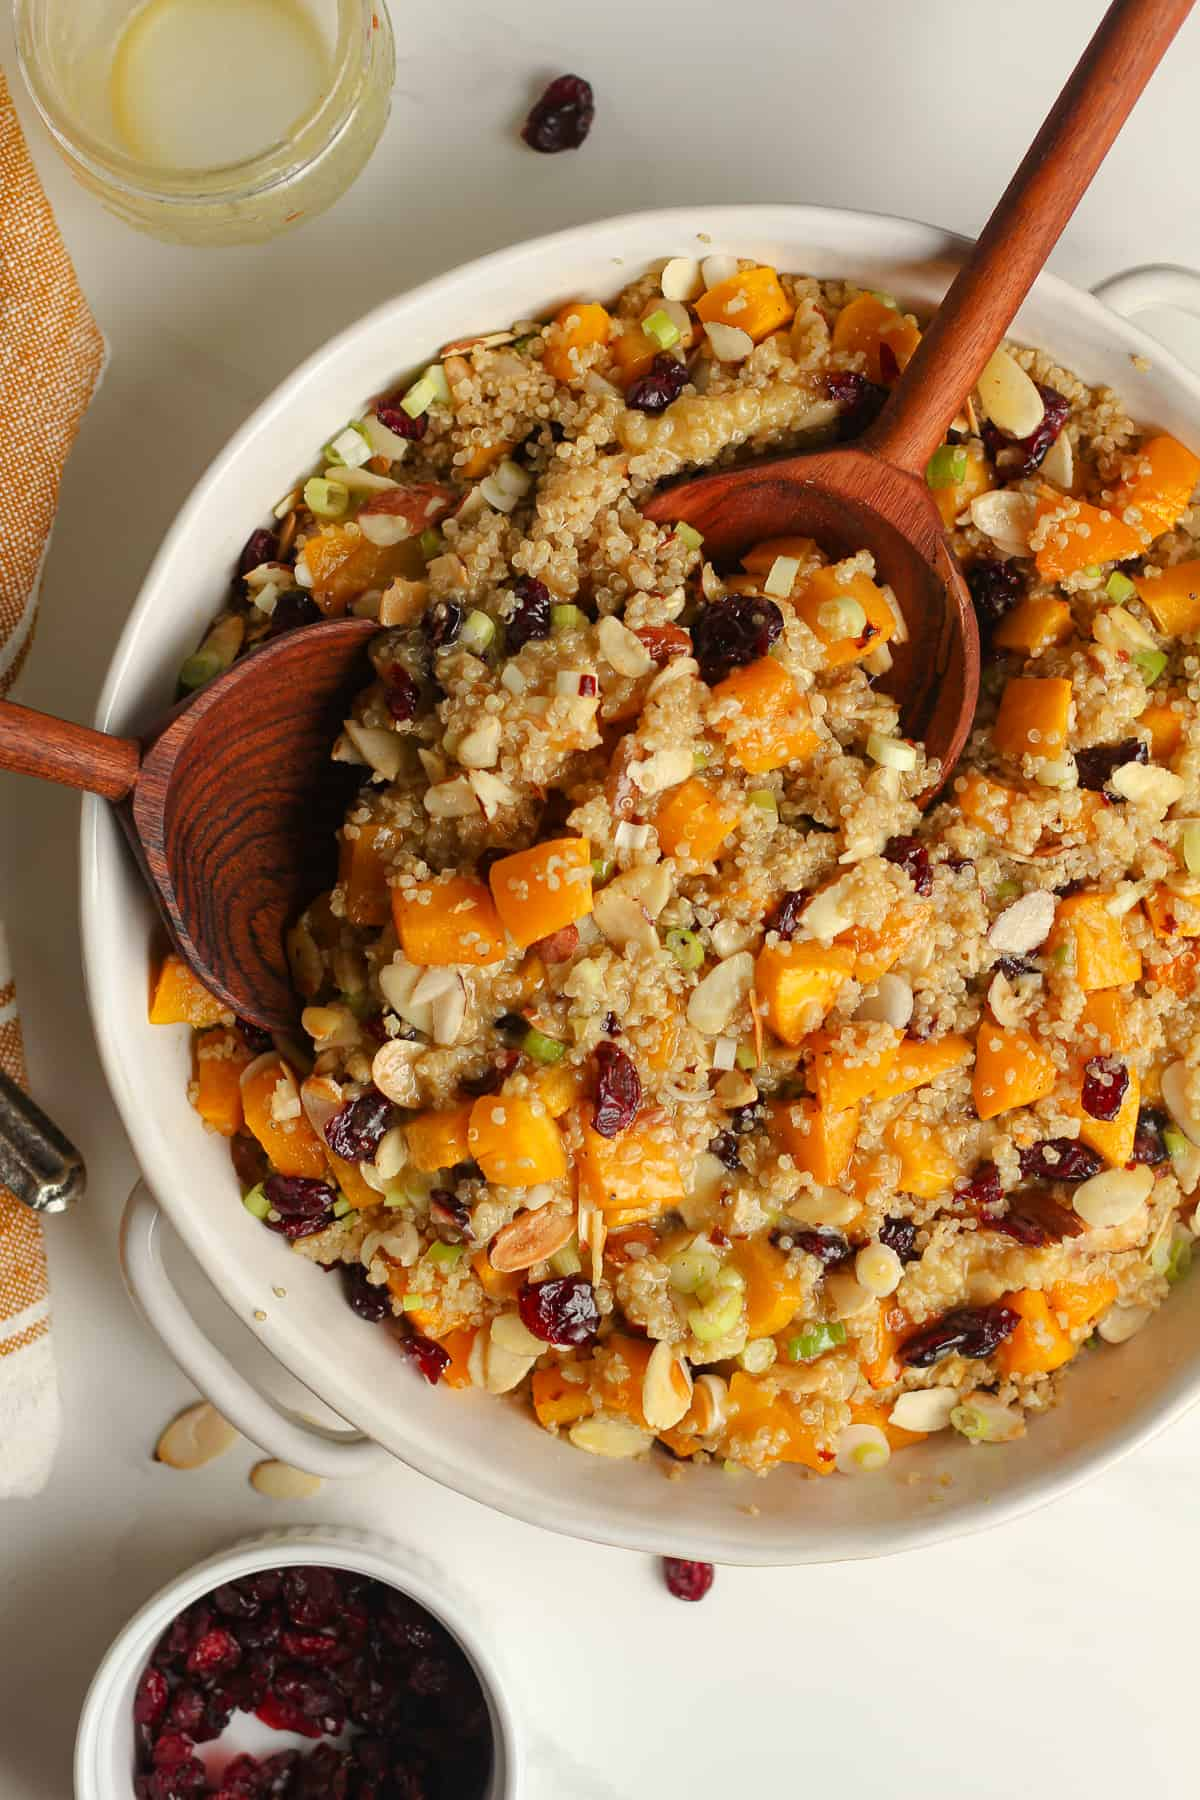 Overhead shot of a bowl of butternut squash quinoa salad with wooden spoons.